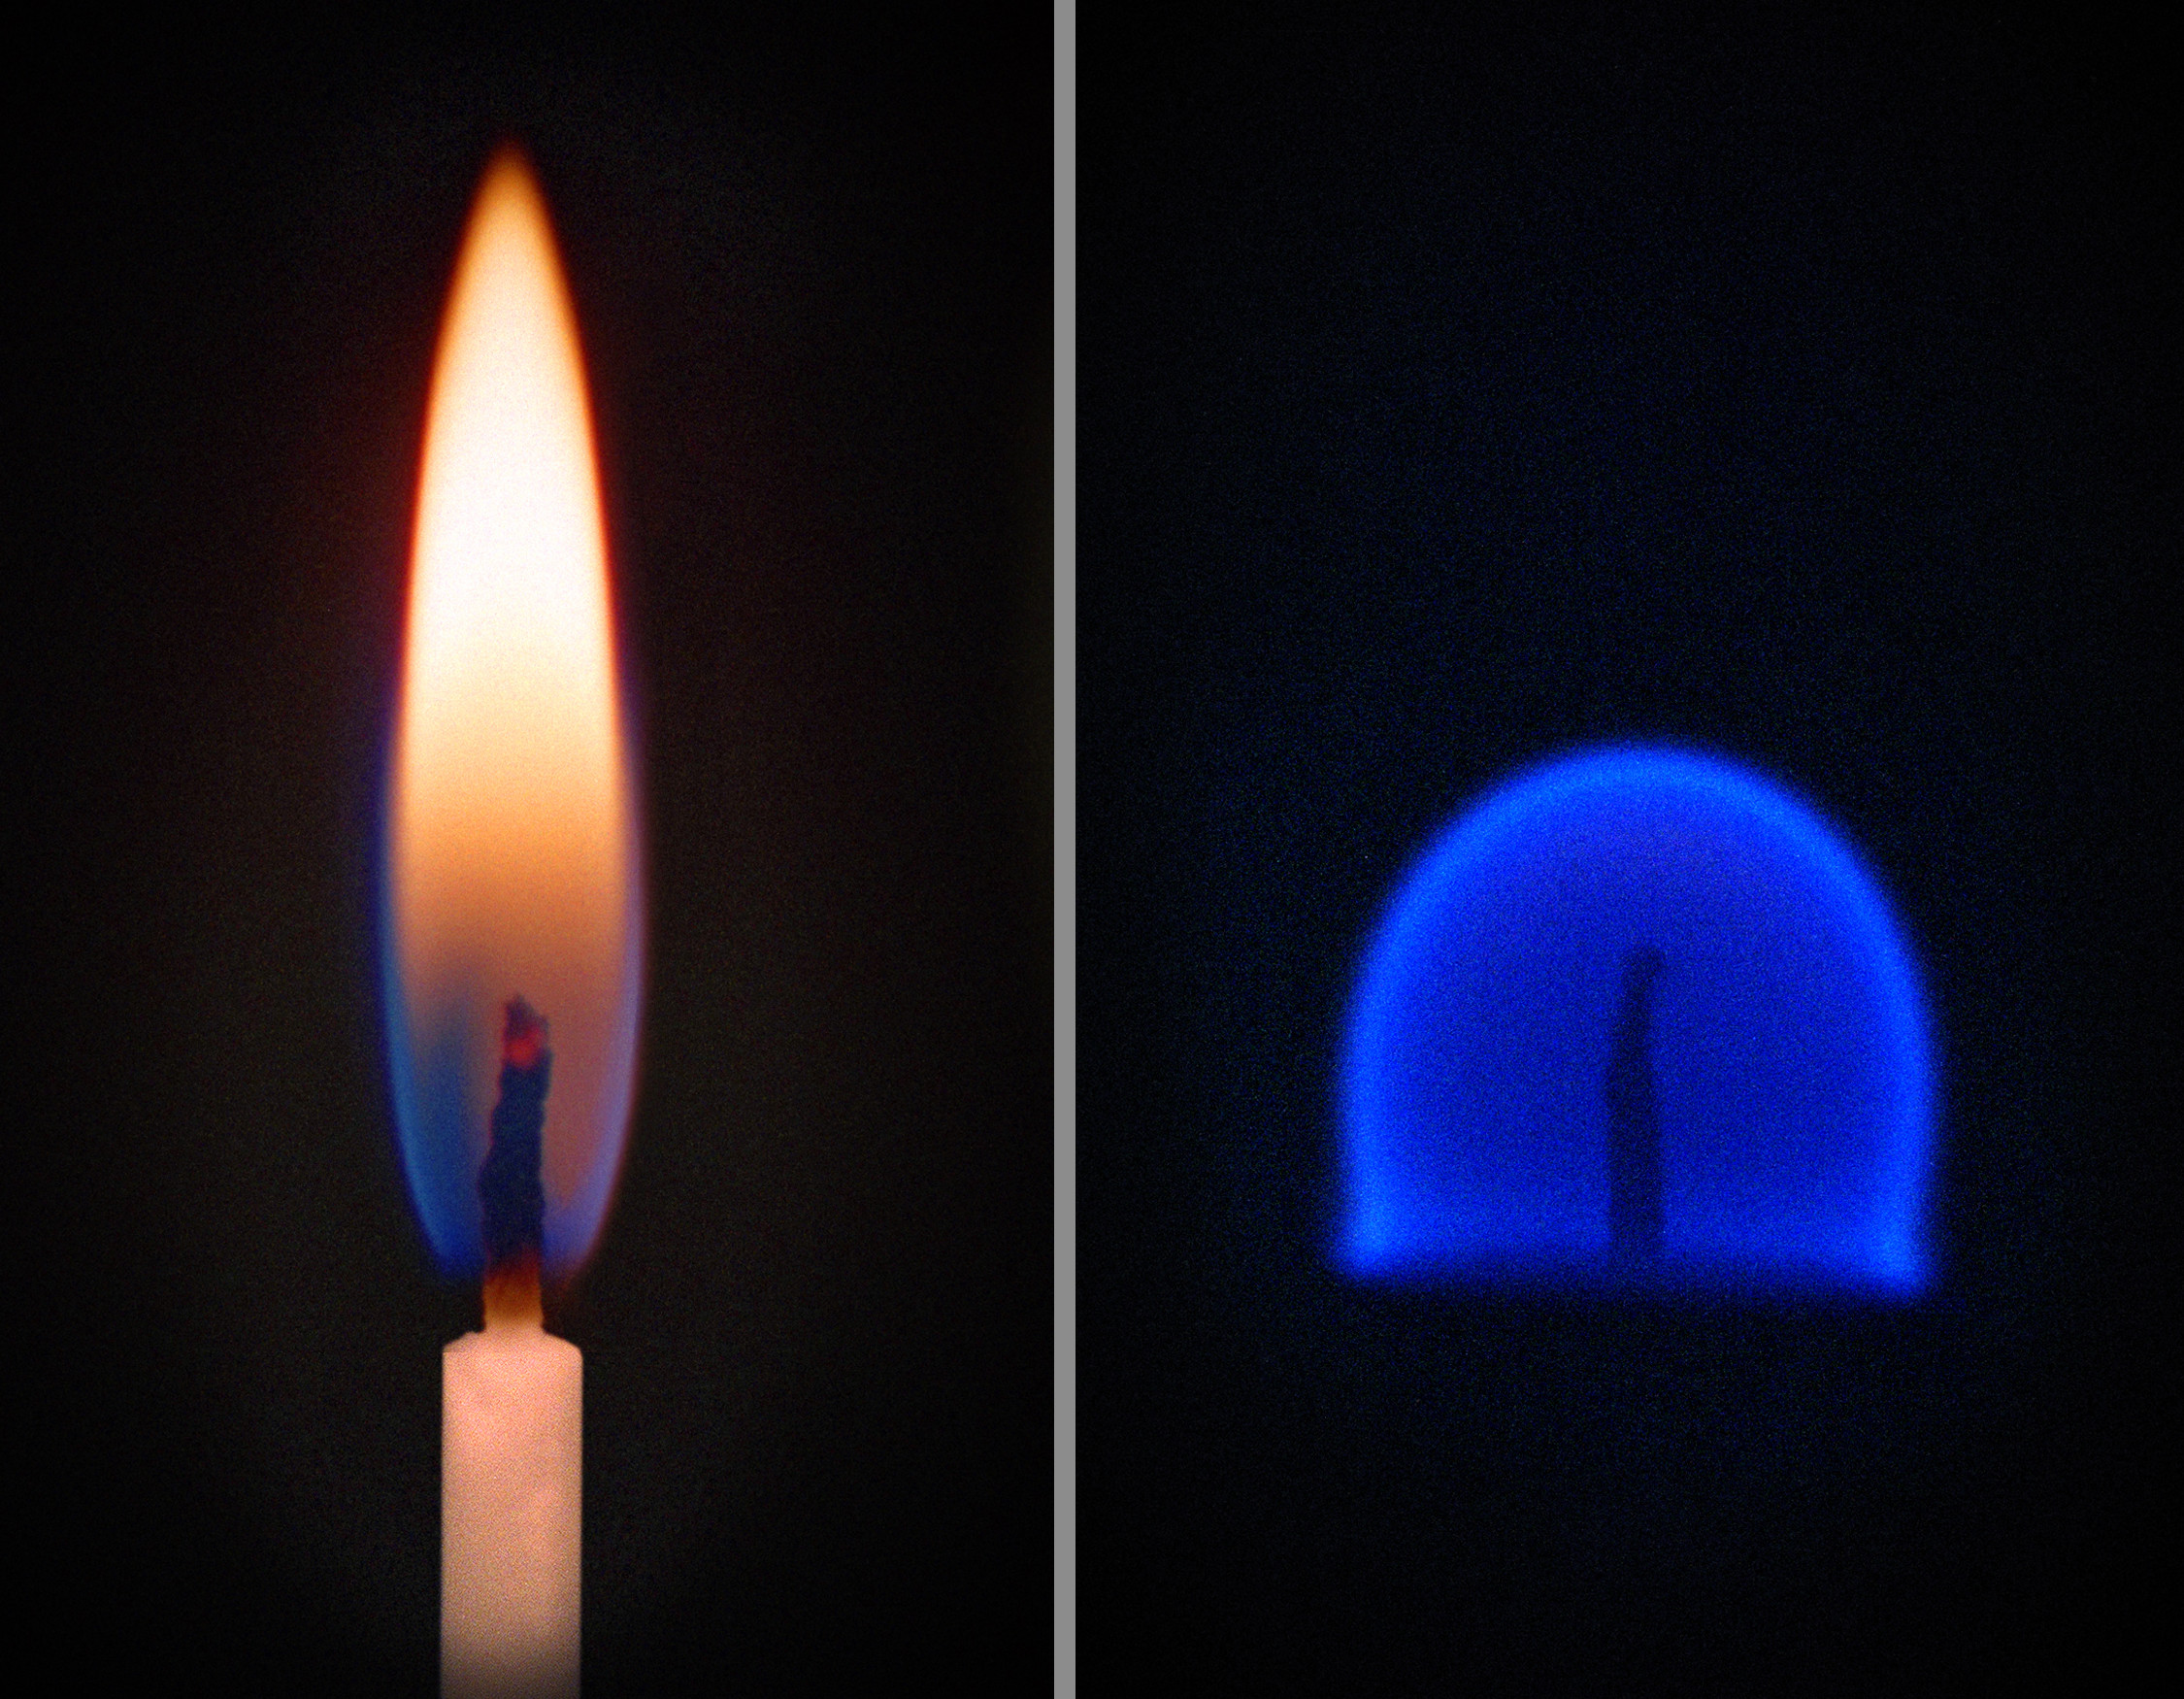 Fire is affected by gravity. Left: Flame on Earth; Right: Flame on ISS